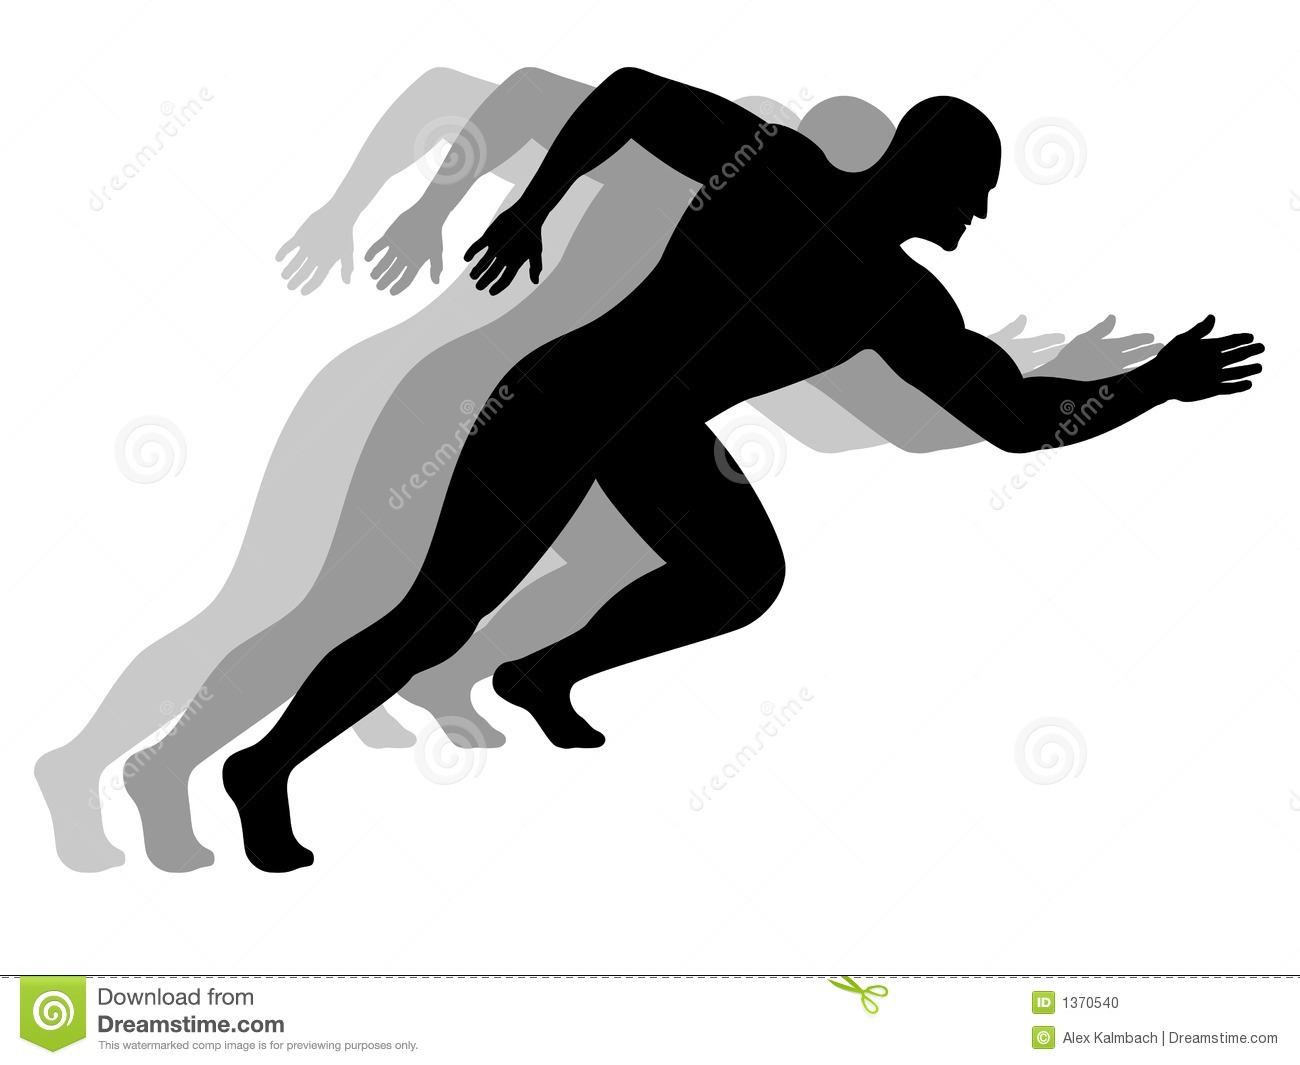 Silhouette of a running man with motion blur.